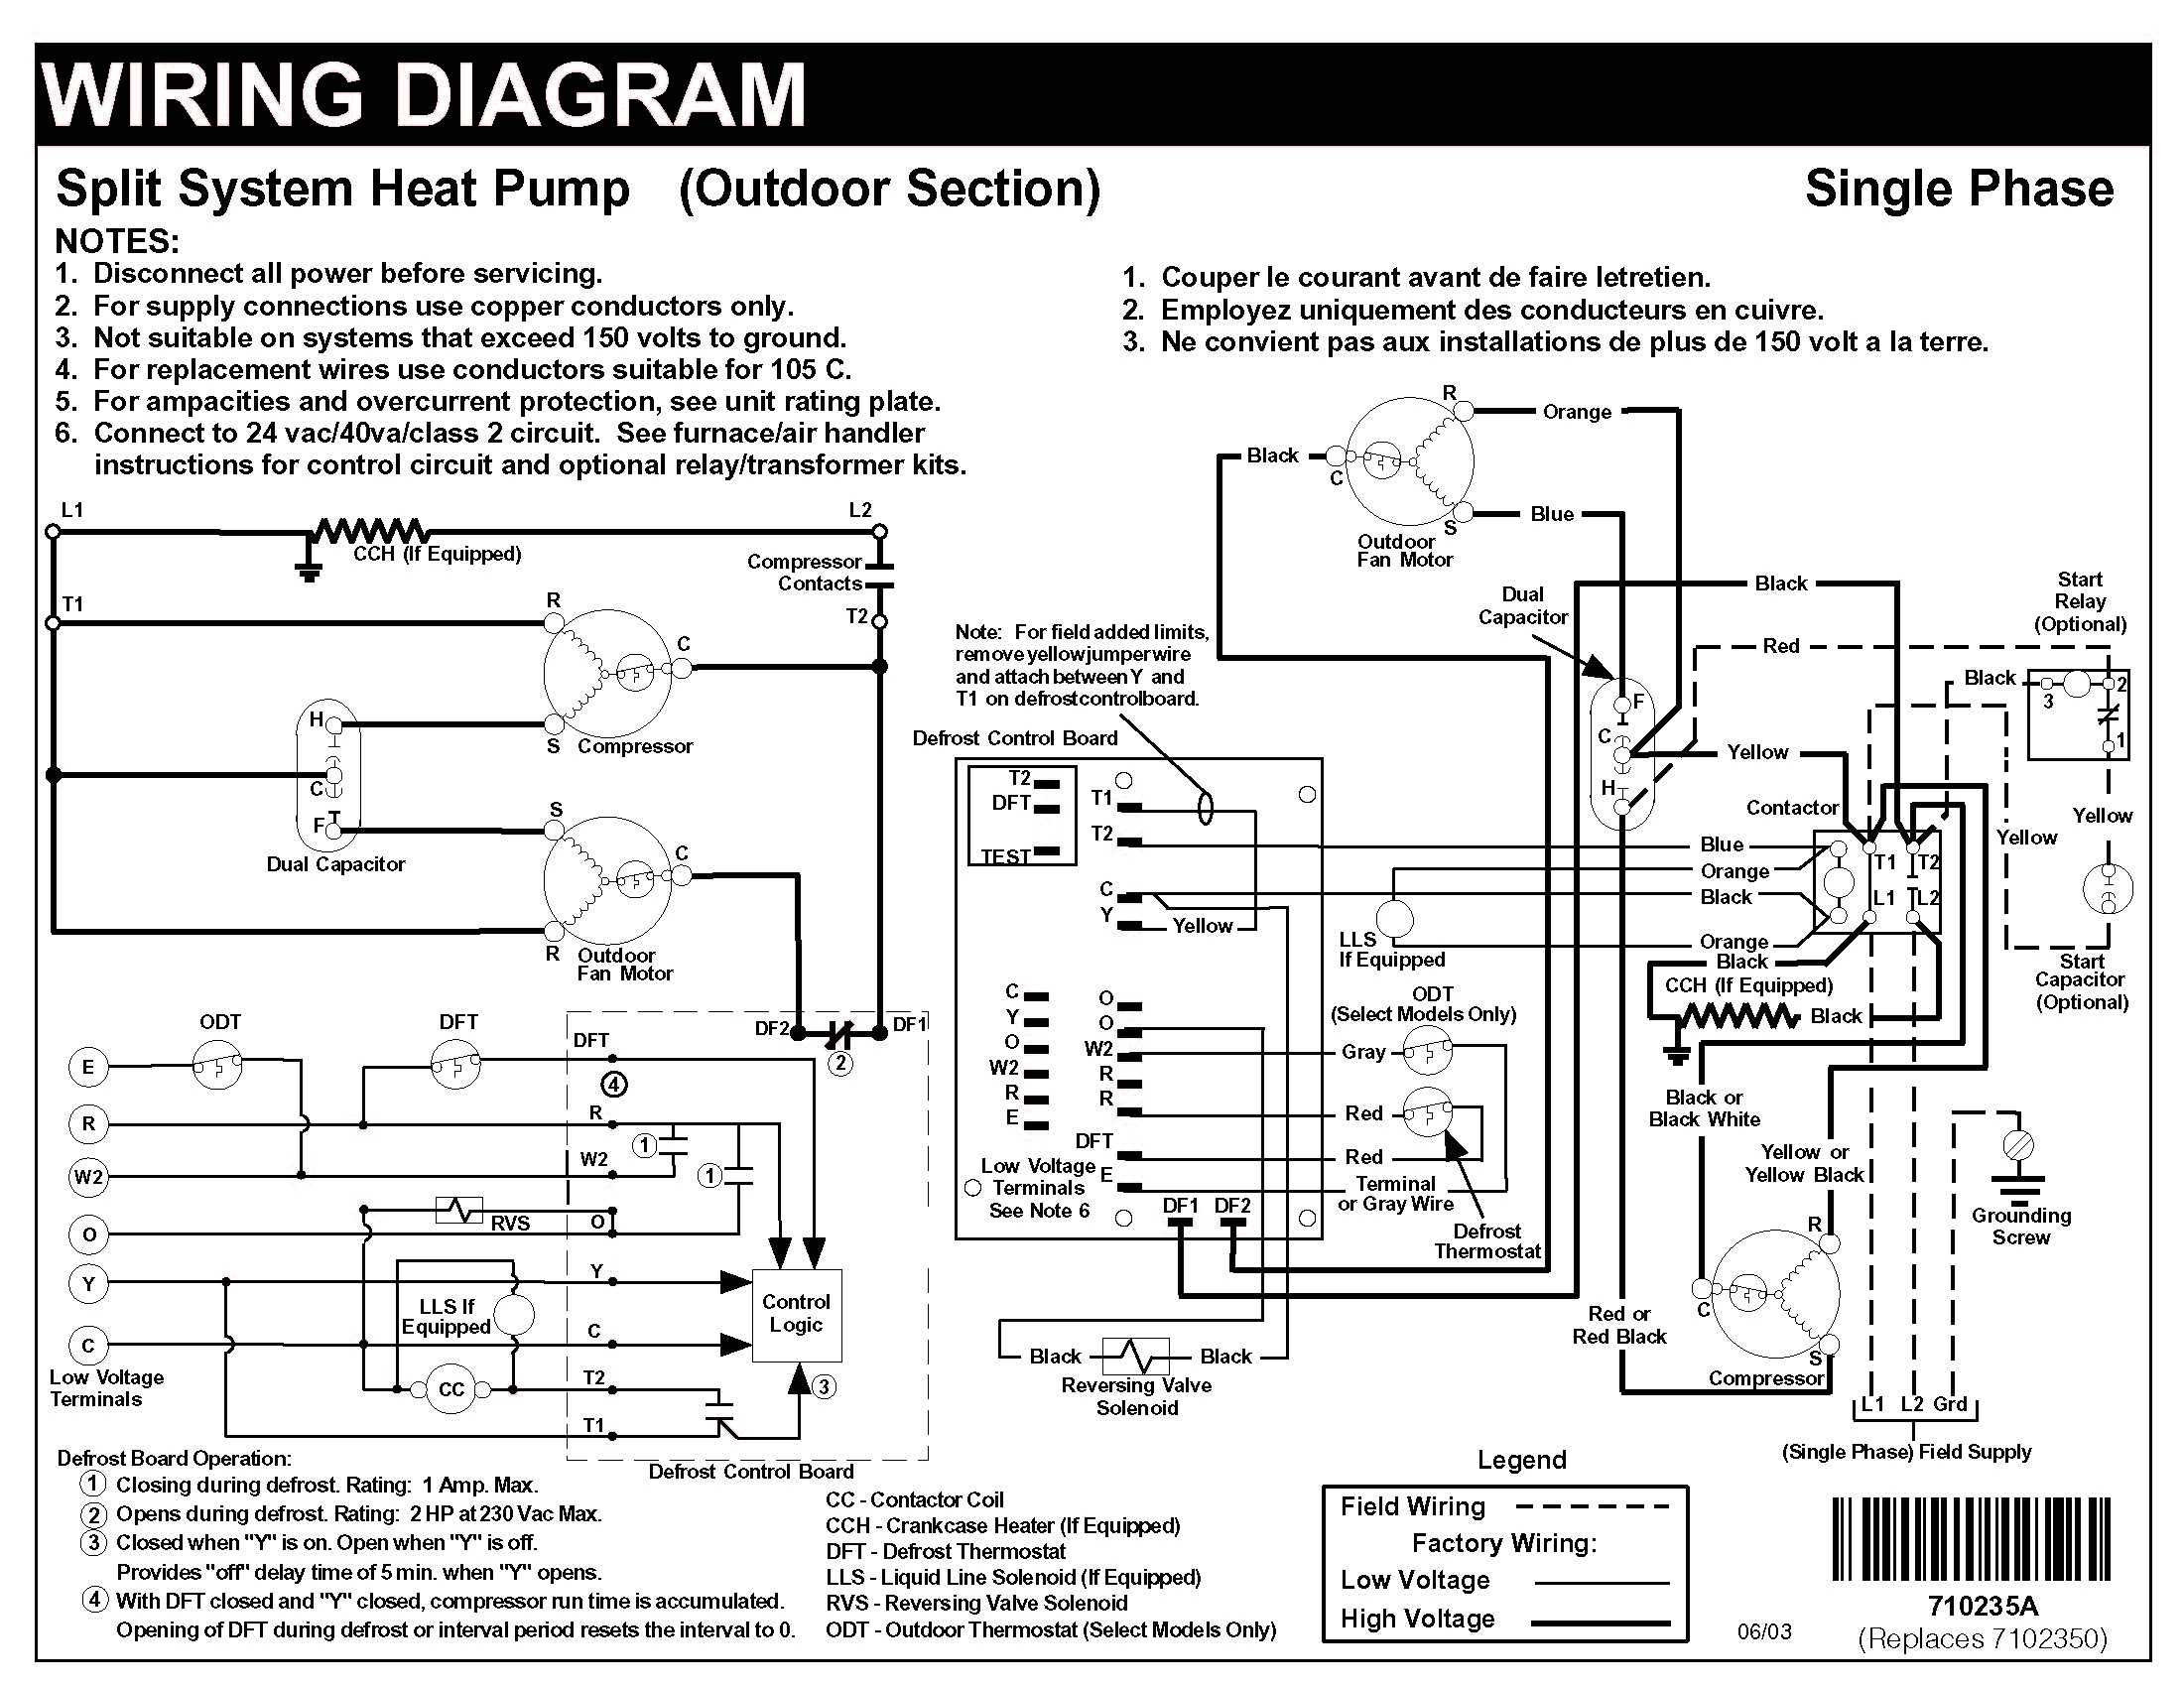 Gallery Of Intertherm Heat Pump Wiring Diagram Download